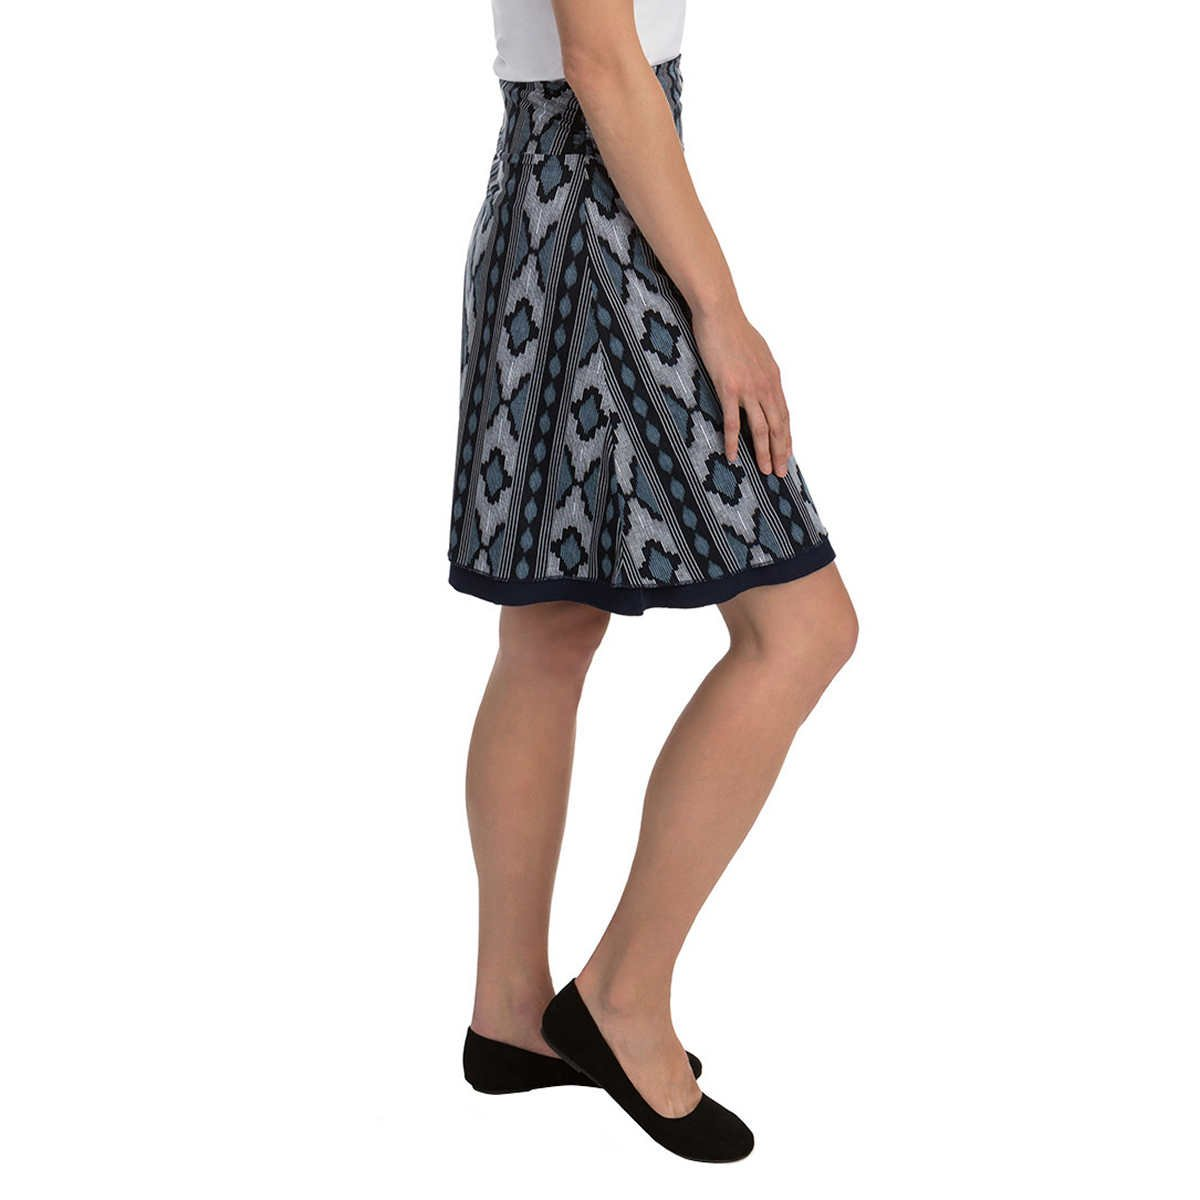 Colorado Clothing Tranquility Women's Reversible Skirt, Navy Pattern, Medium